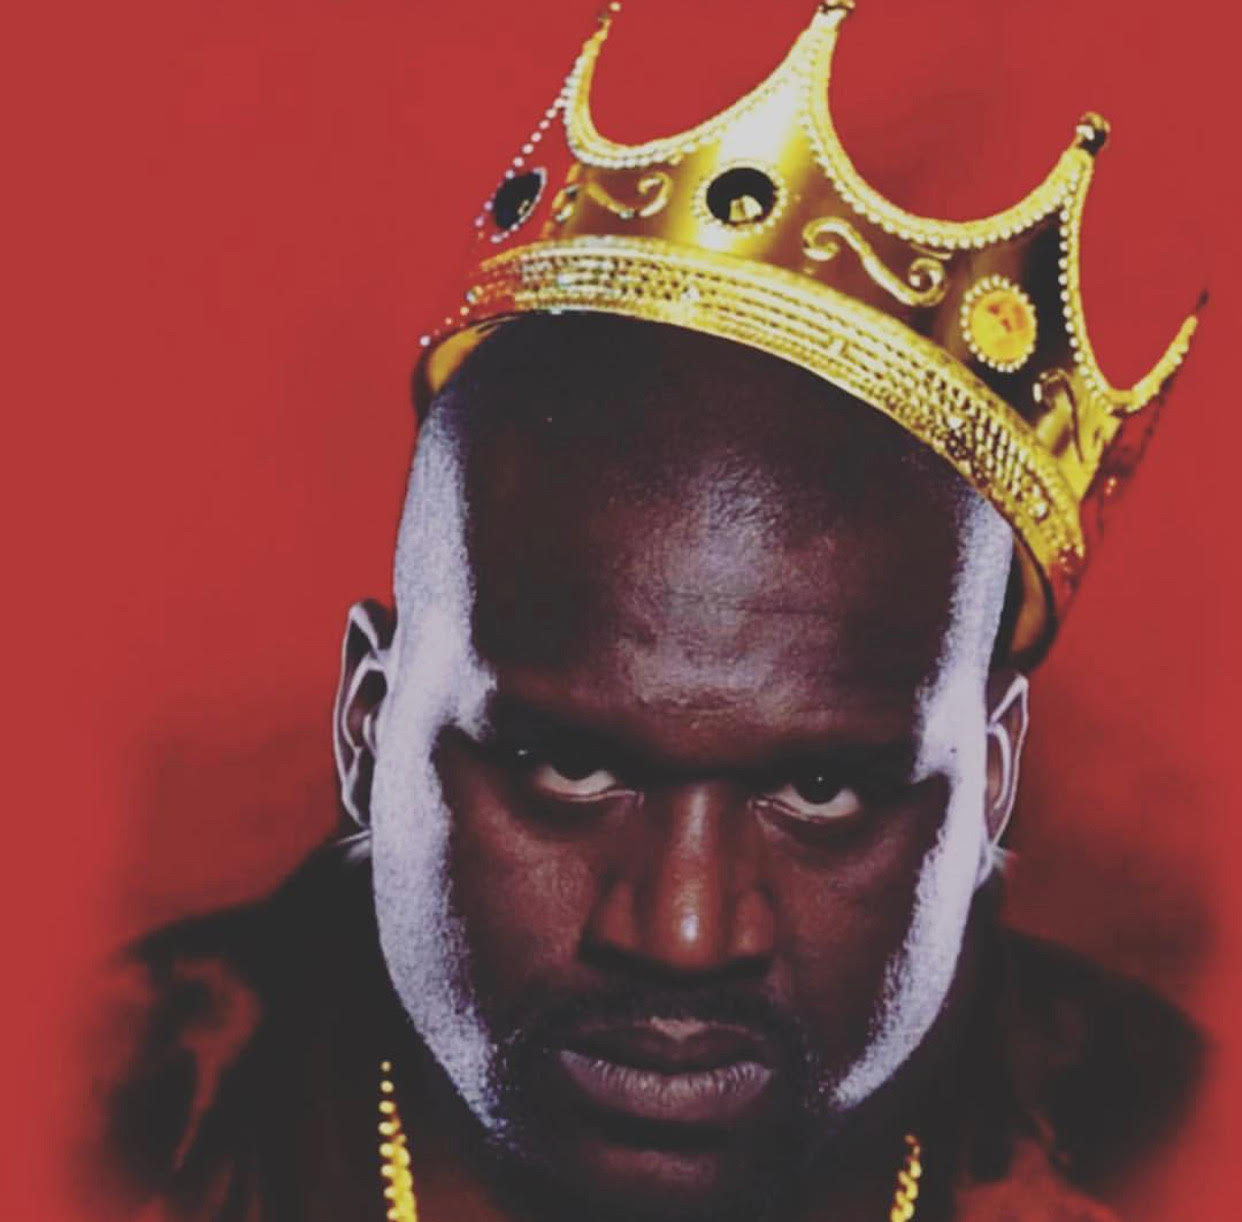 https://shaqfuradio.com/wp-content/uploads/2018/11/Shaqfu-radio-shaq-biggie-crown.jpg